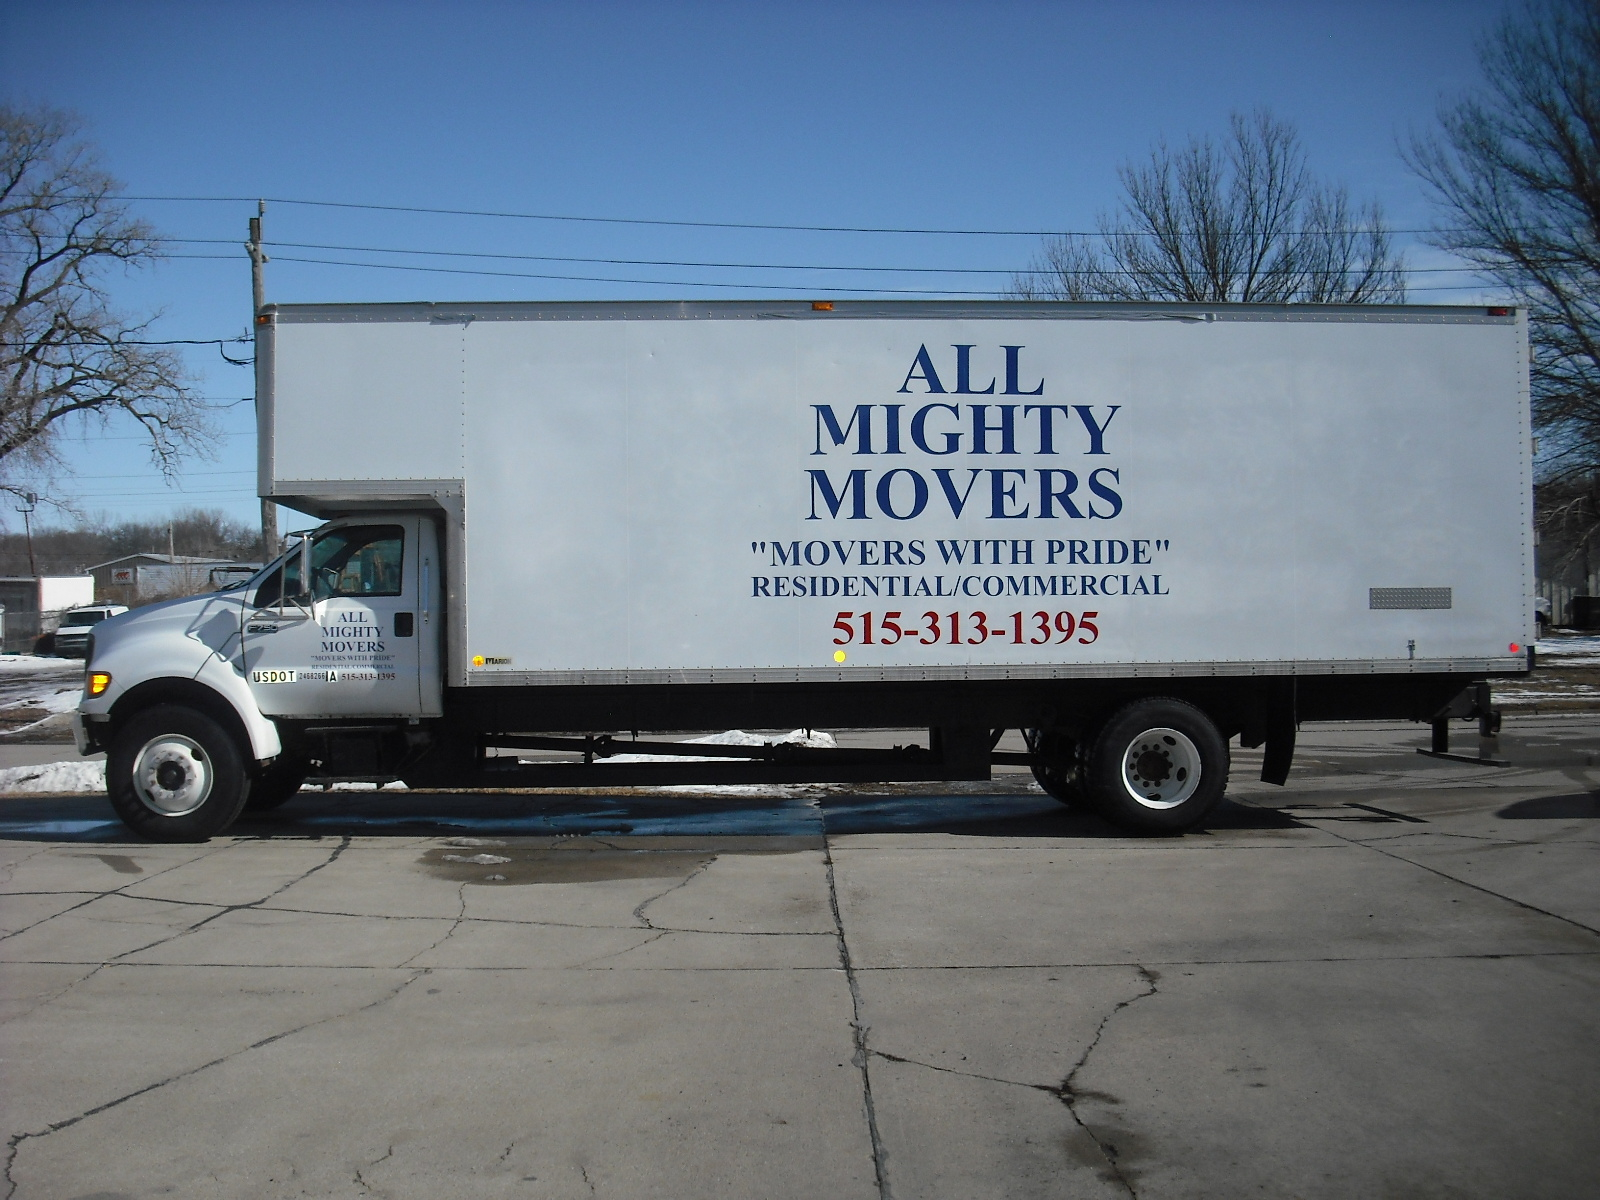 All Mighty Movers Coupons near me in Des Moines : 8coupons